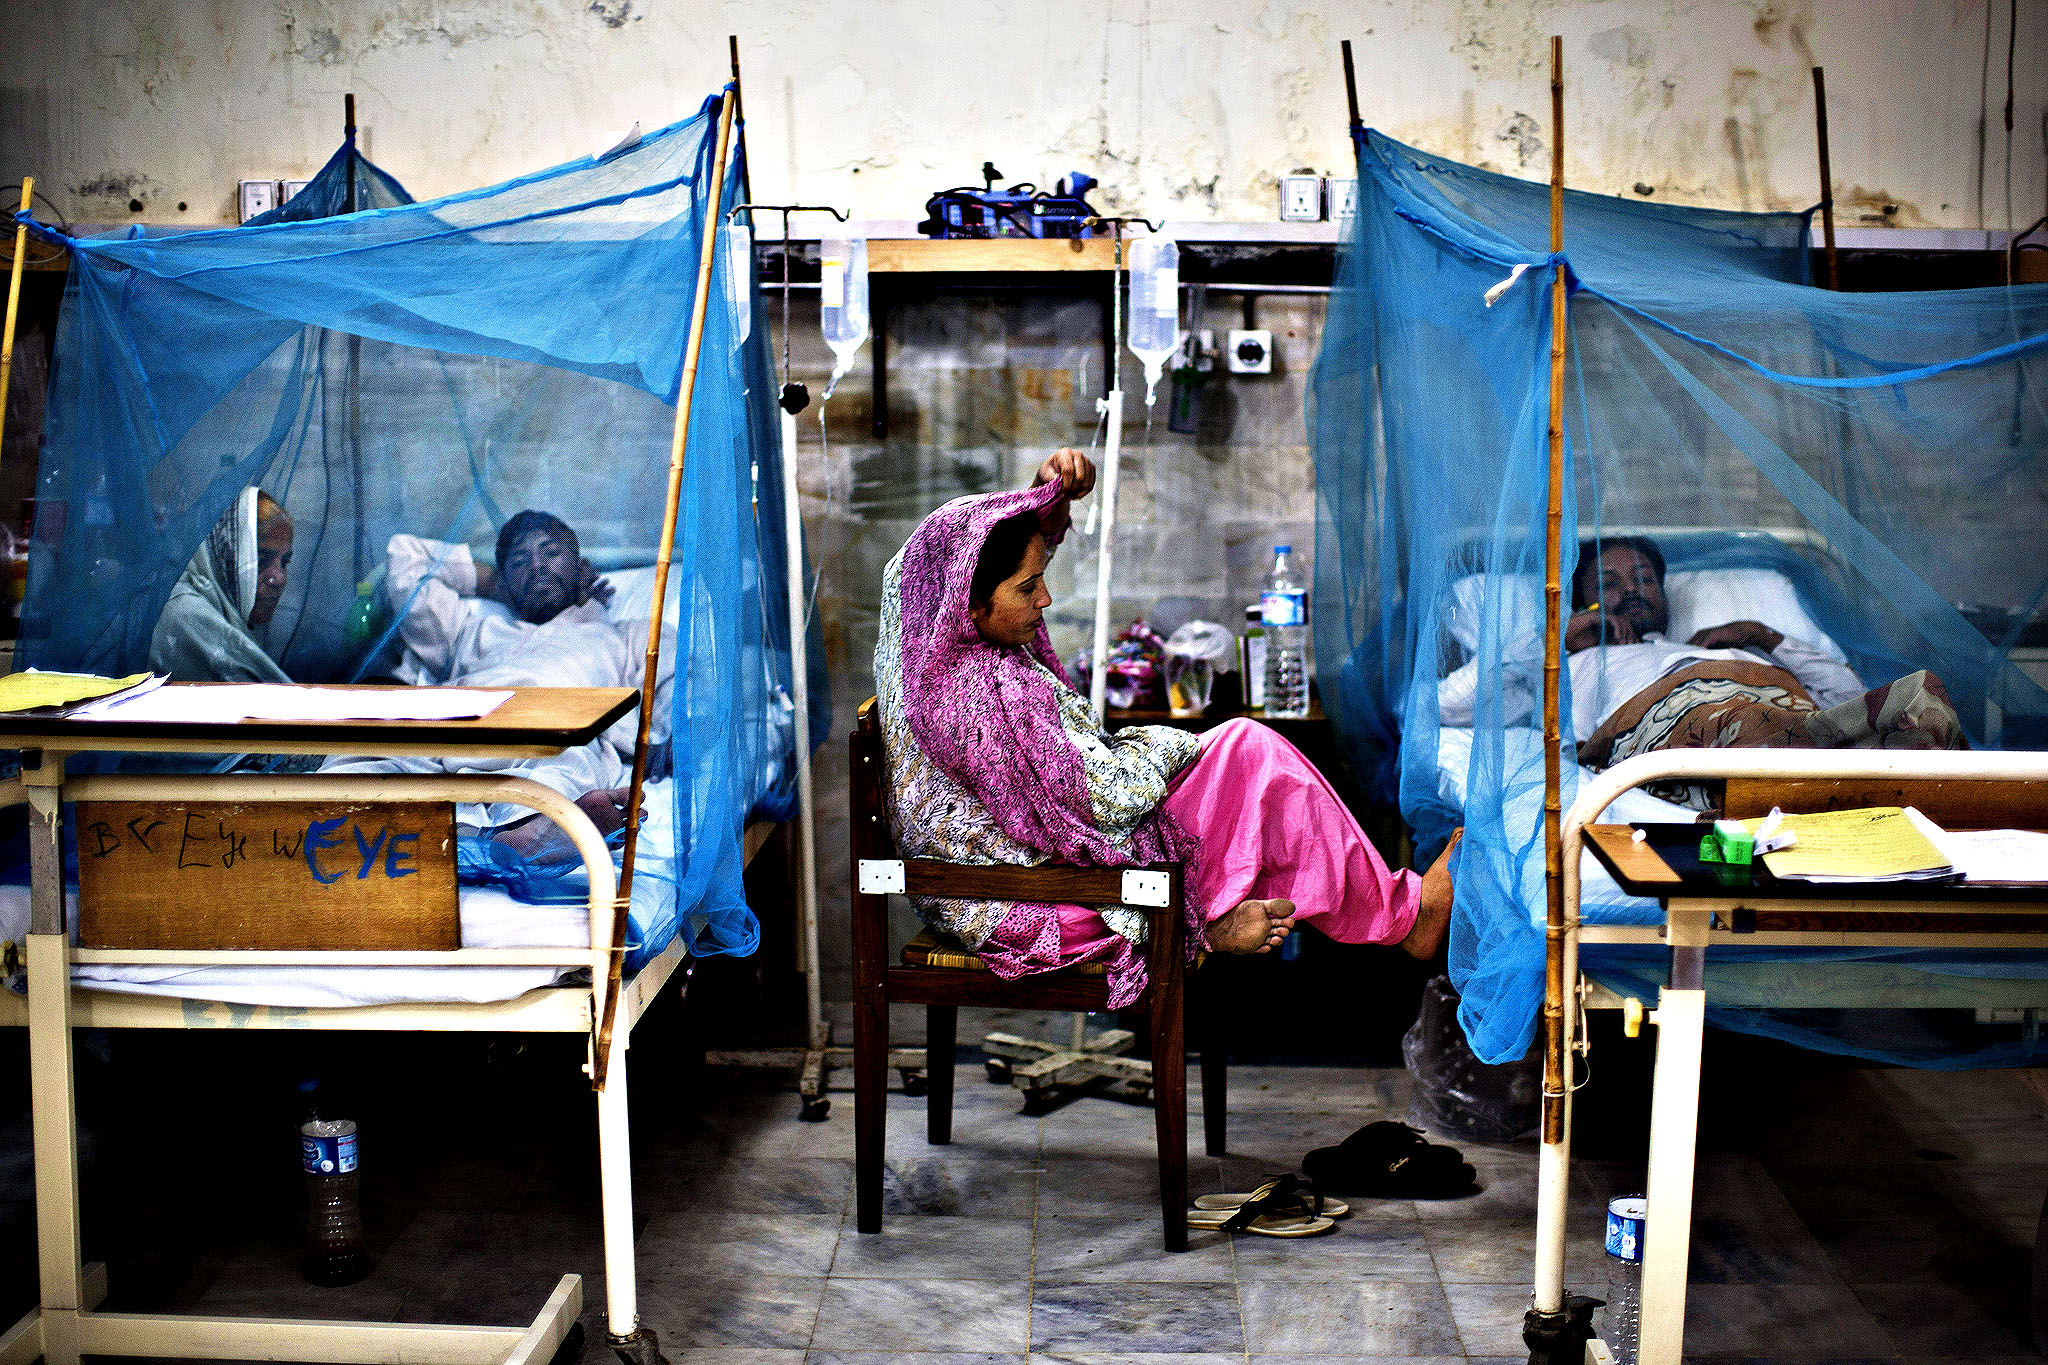 Pakistani patients, suffering from the mosquito-borne disease, dengue fever, lay in beds covered with nets at an isolation ward of a hospital in Rawalpindi, Pakistan, Thursday, Oct. 24, 2013. Dengue, a flu-like illness, is spread by the Aedes mosquito and spikes during the annual monsoons in Pakistan, when the rains leave puddles of stagnant water where the insects breed.